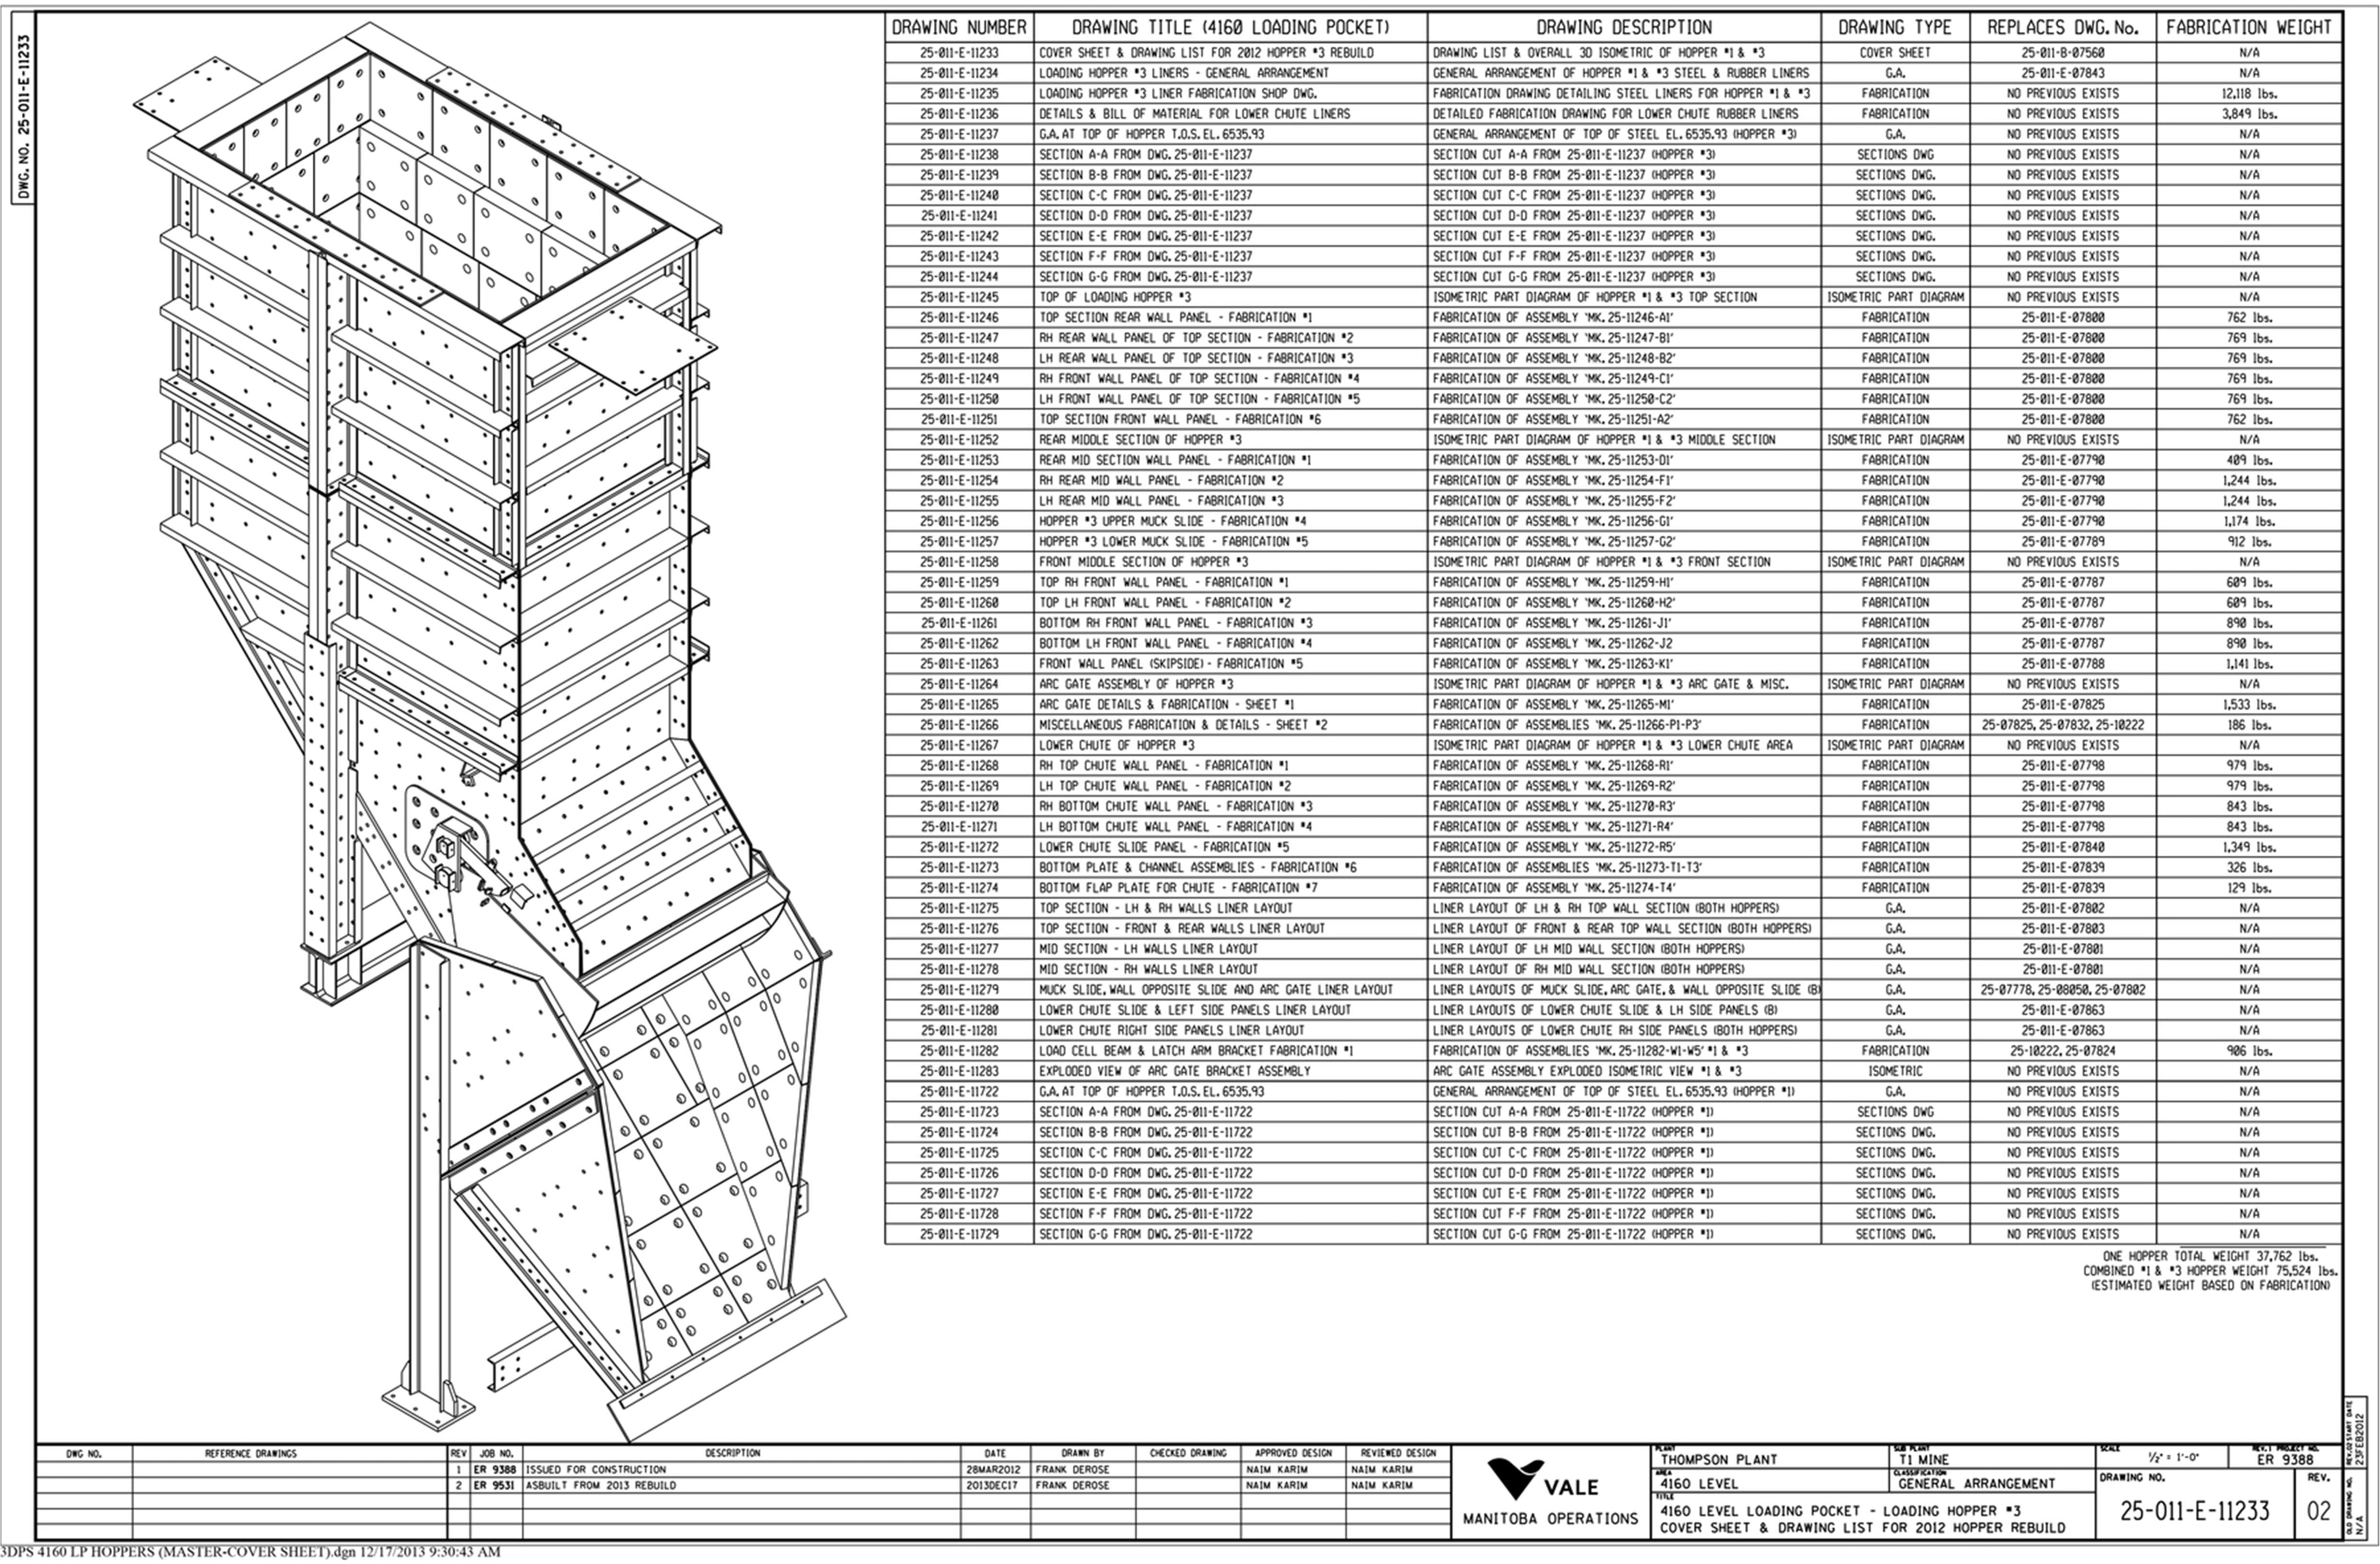 Steel detailing design and fabrication software prosteel phase 1 2 full drawing portfolio 1 biocorpaavc